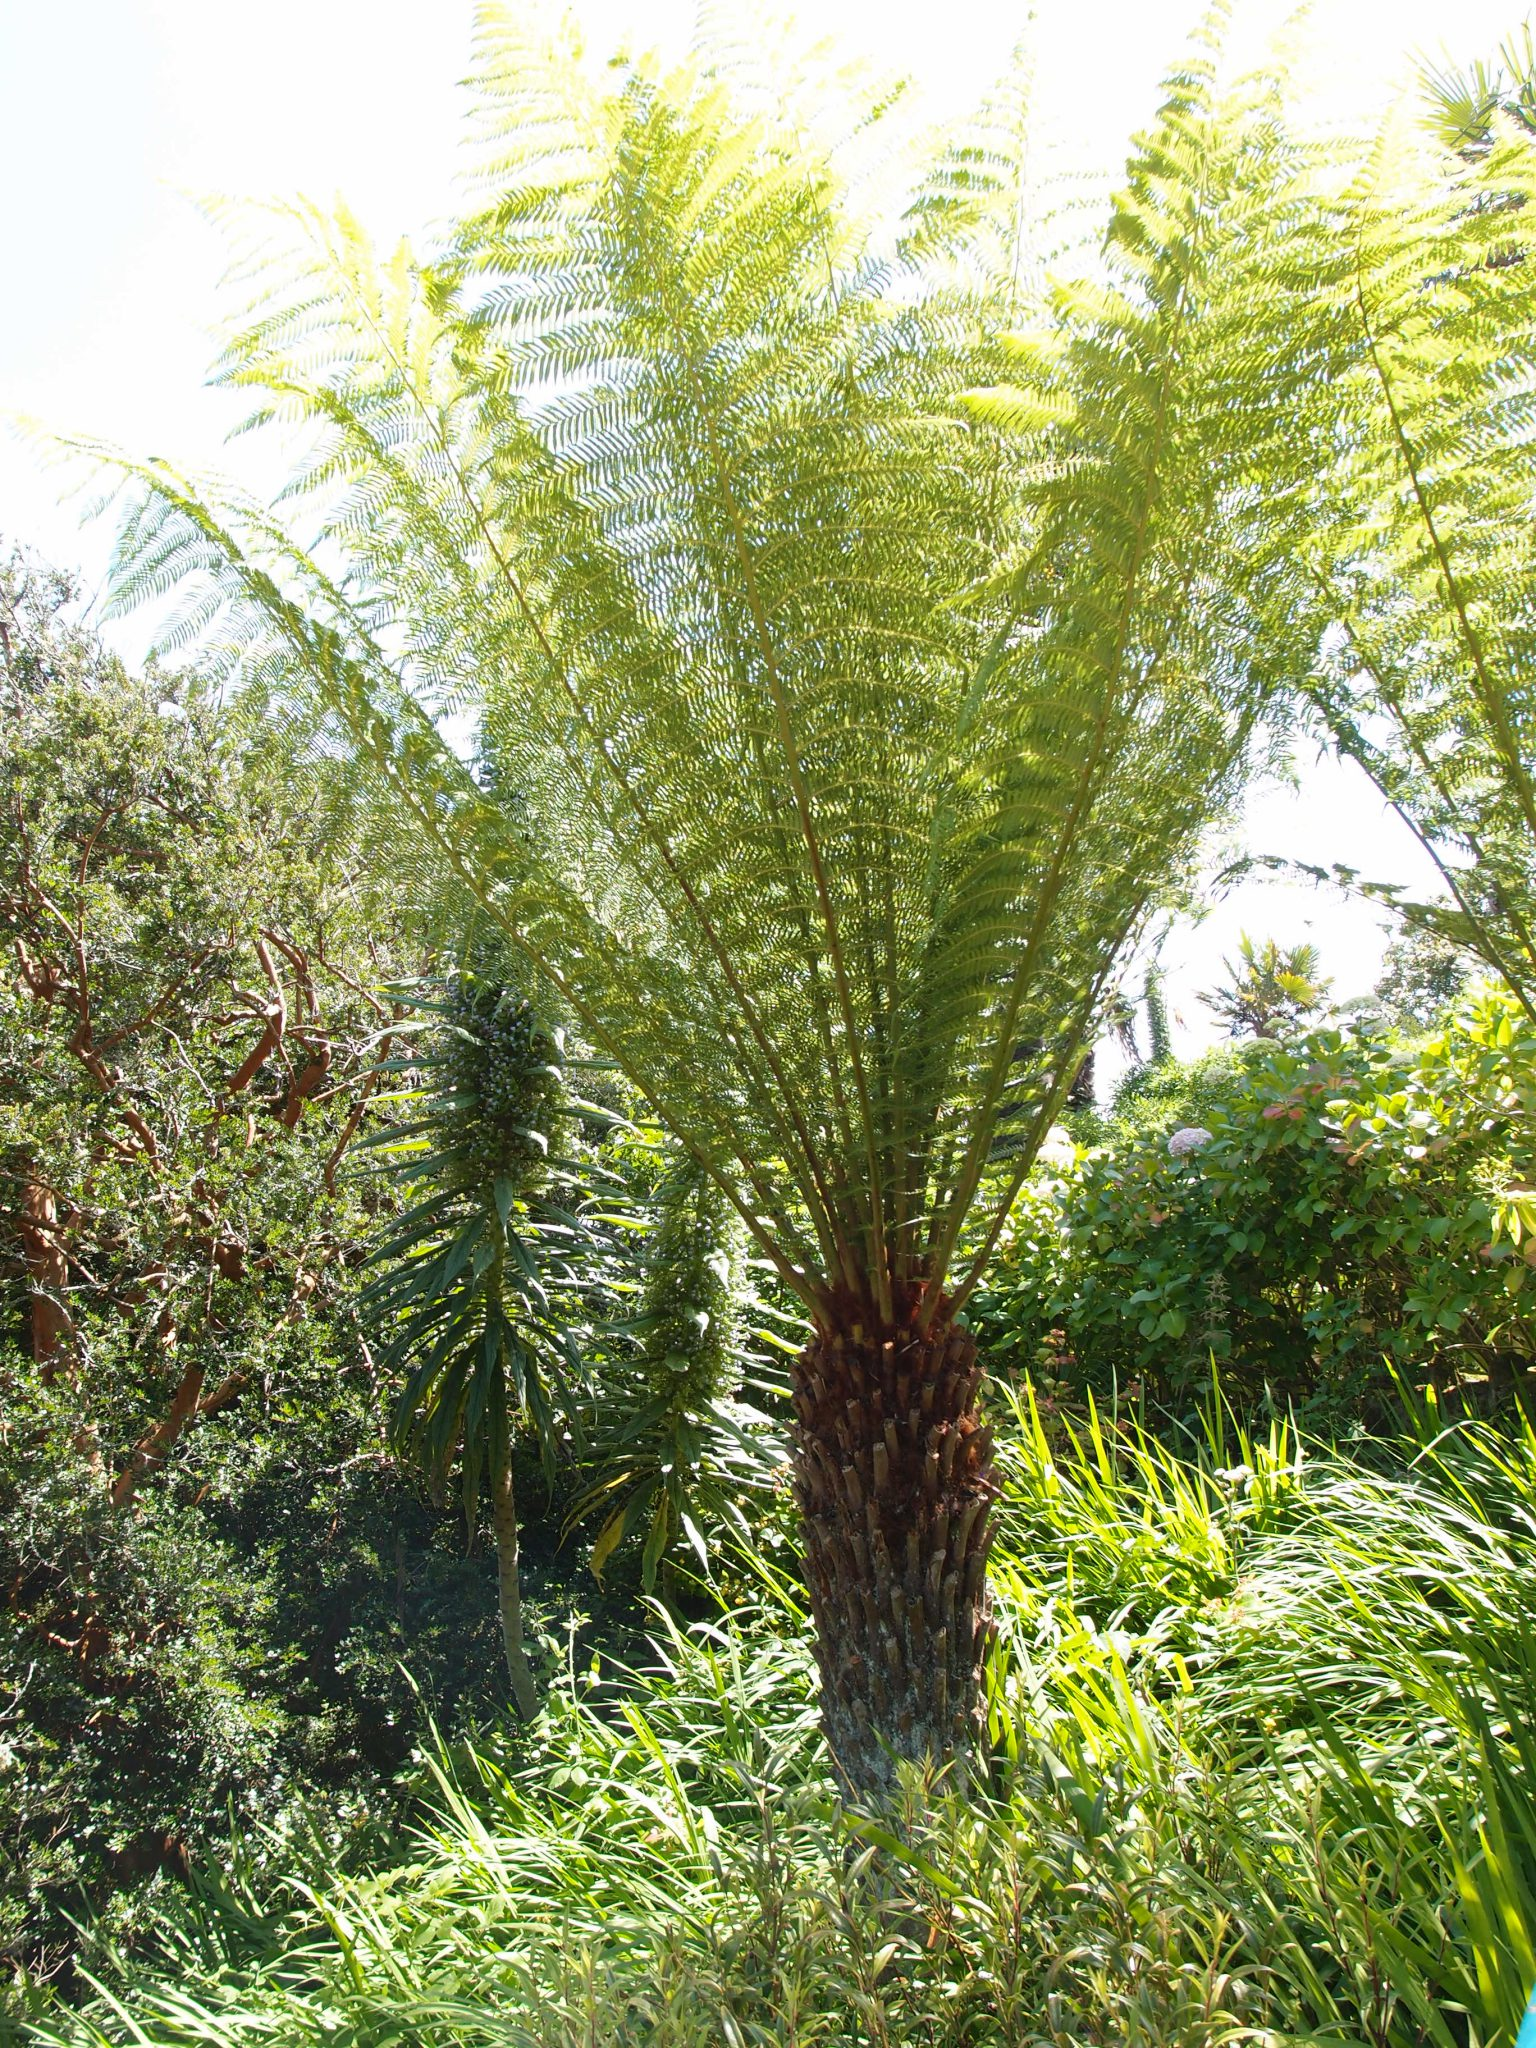 In the Gazebo Garden: a grove of Tree Fern (Dicksonia antartica)